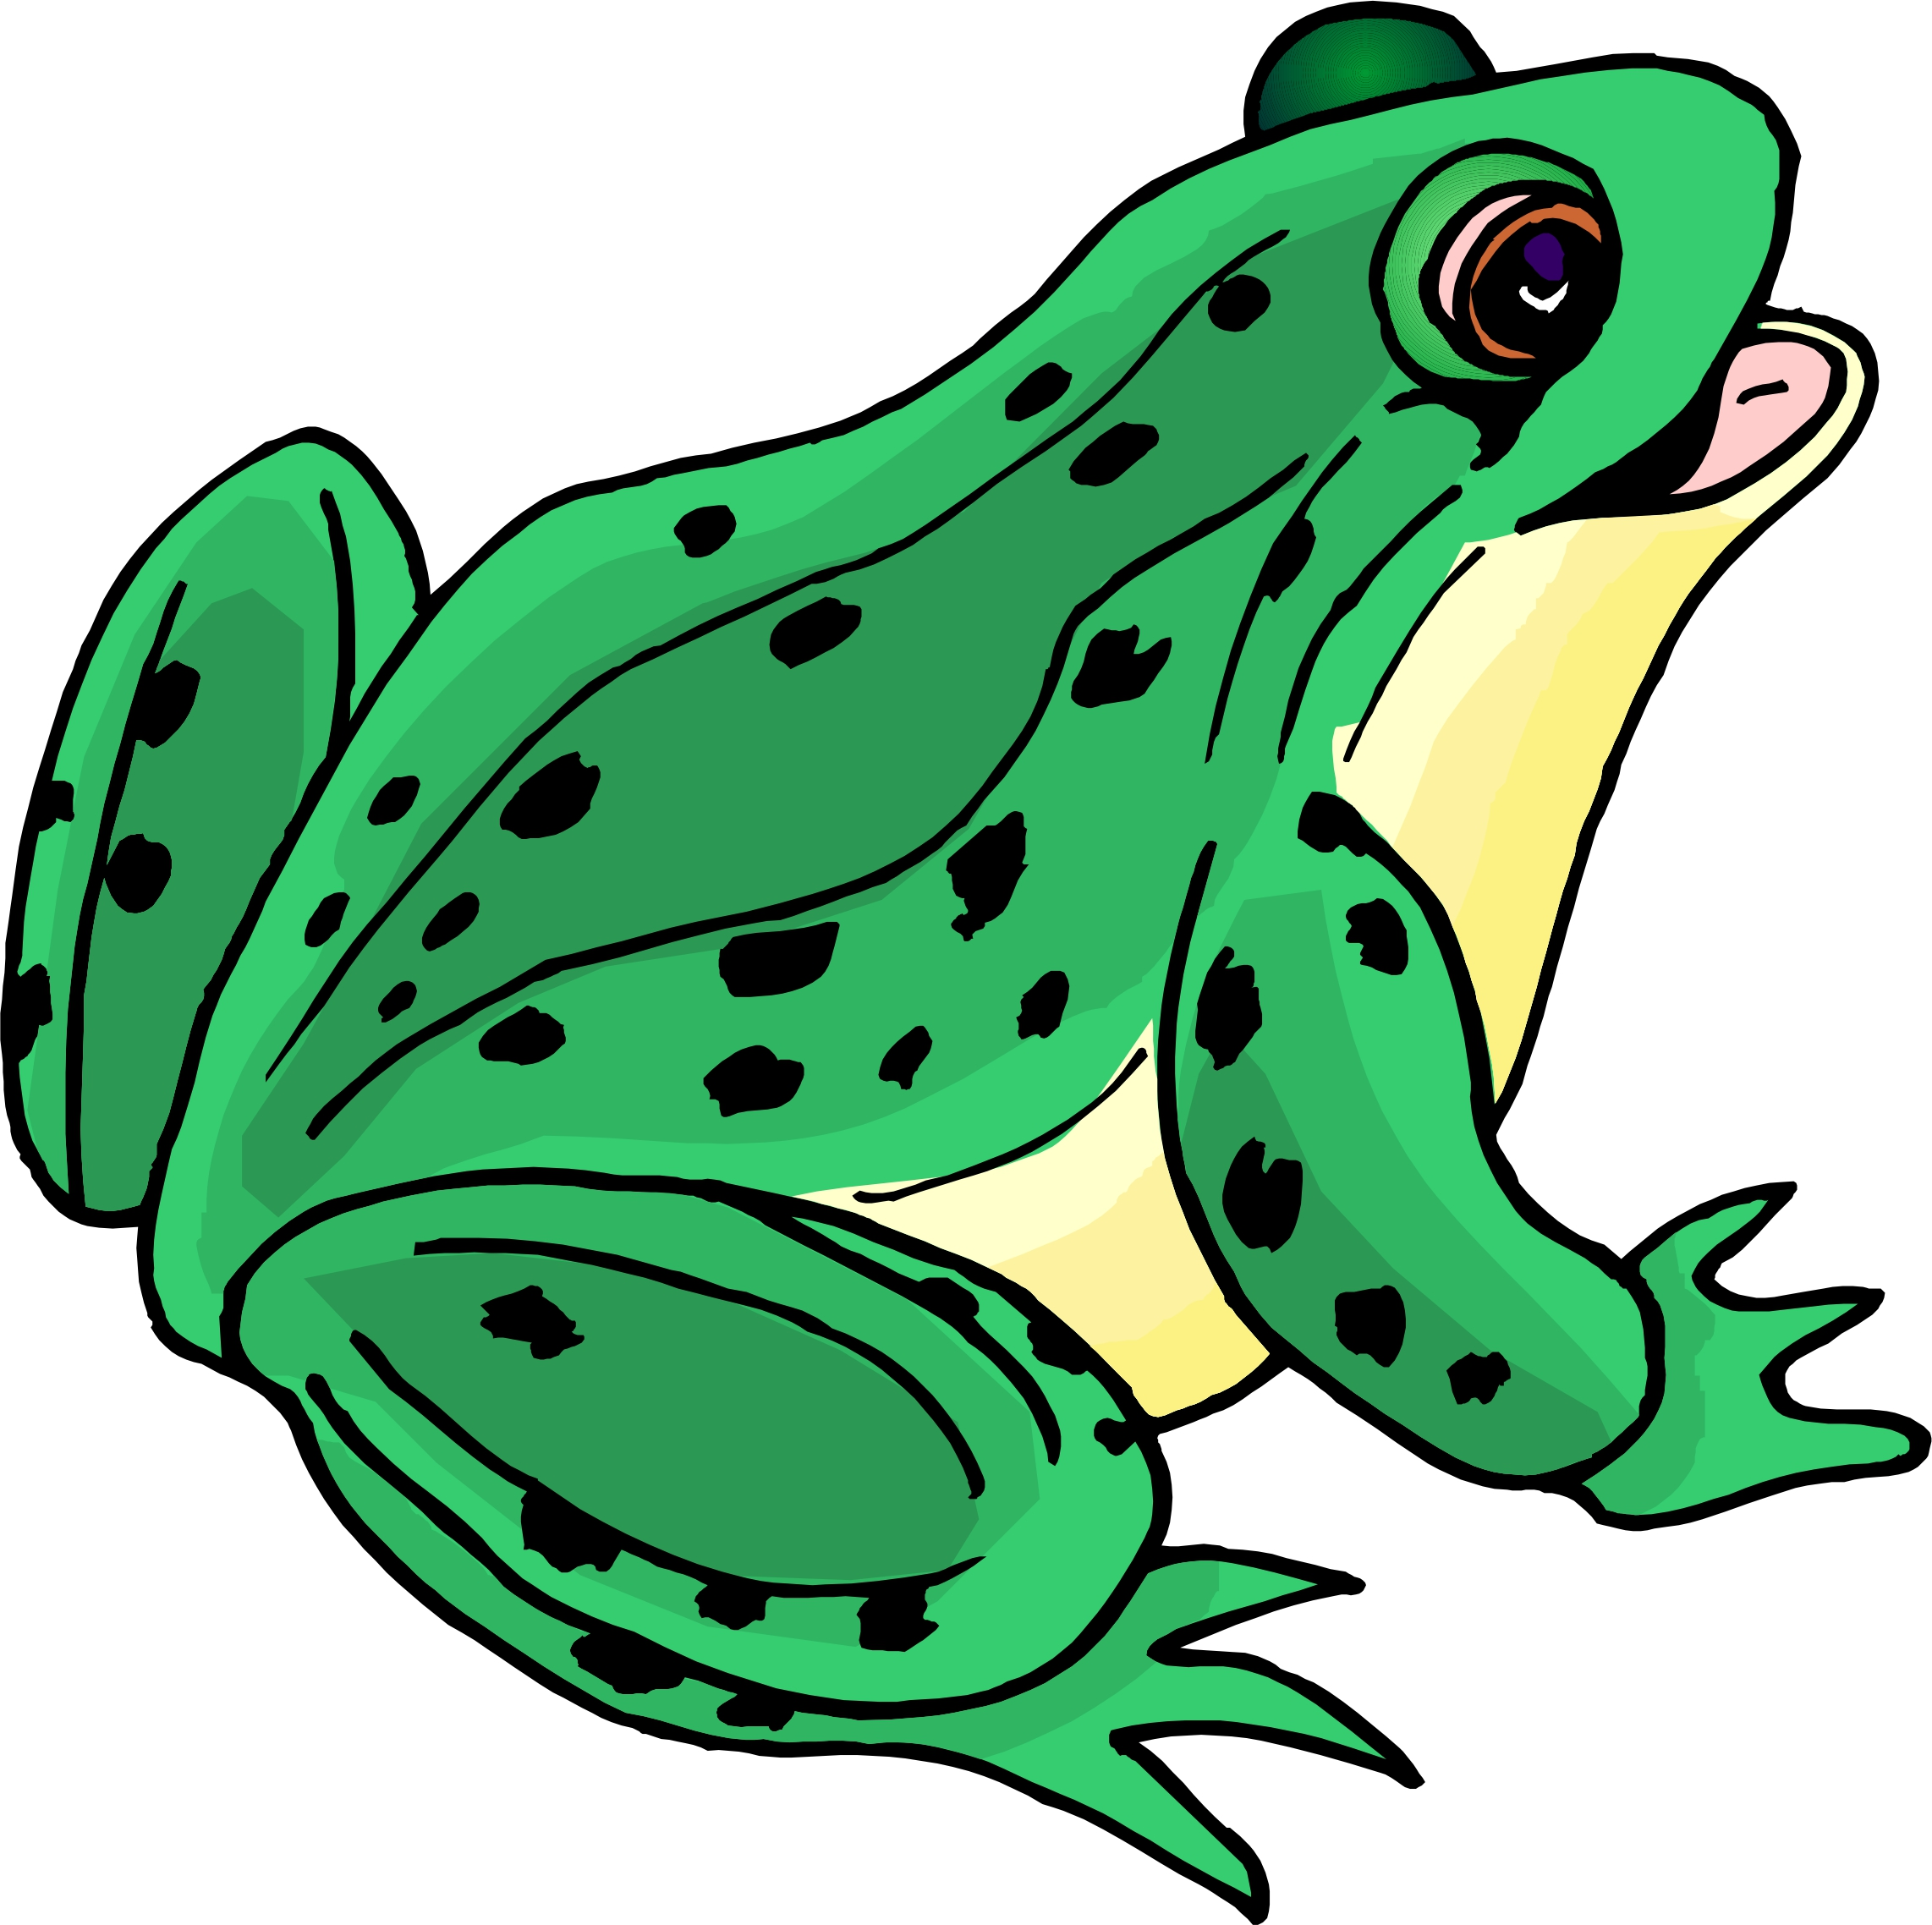 Back To Cartoon From Frogs clipart free image.